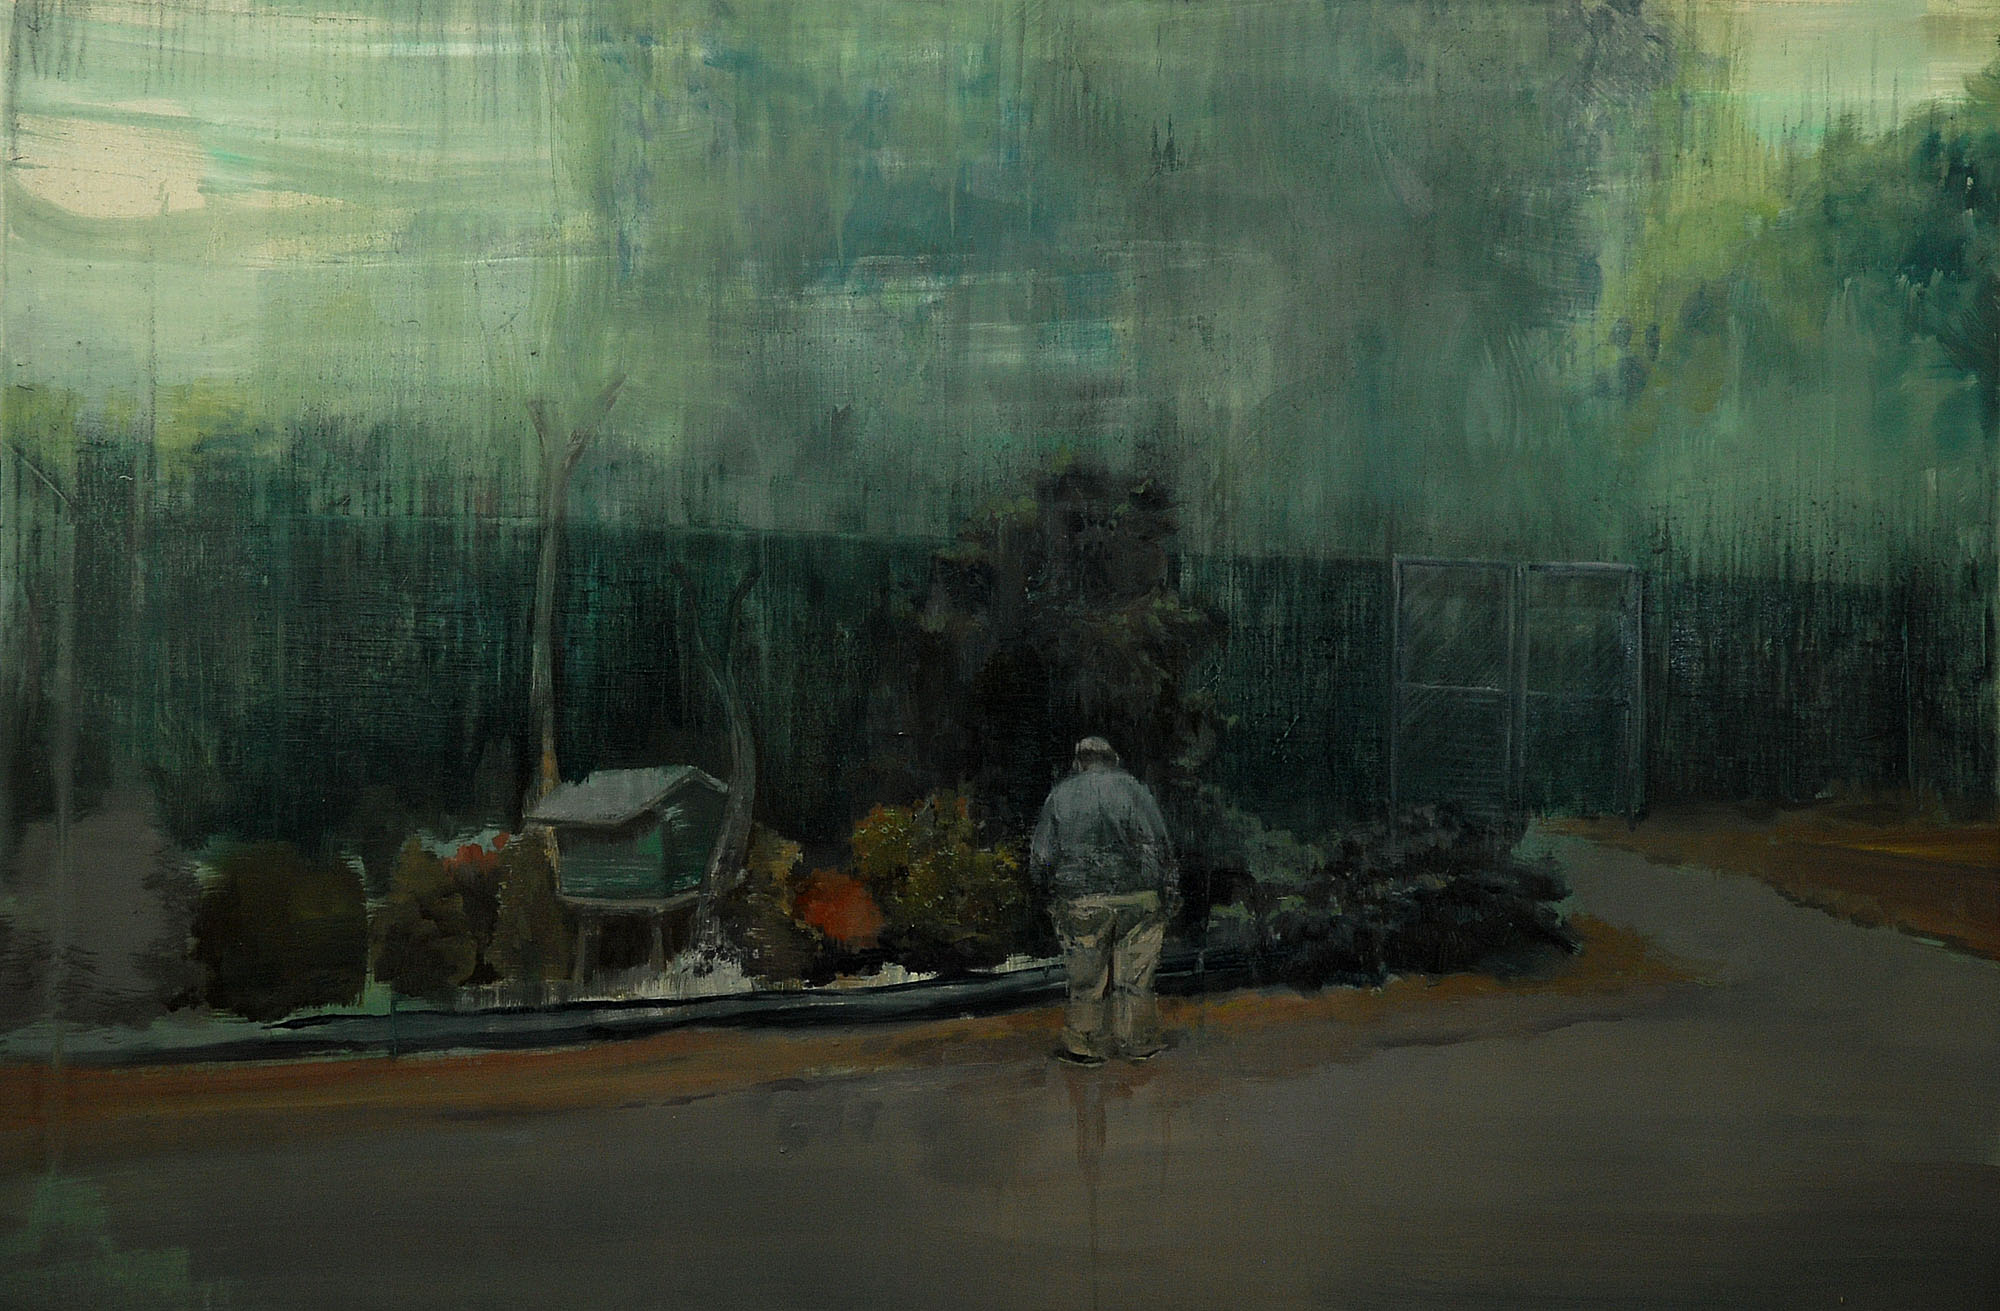 Lu Song 吕松, Home From Home, 2013, Oil on canvas 布面油画, 100 x 150 cm